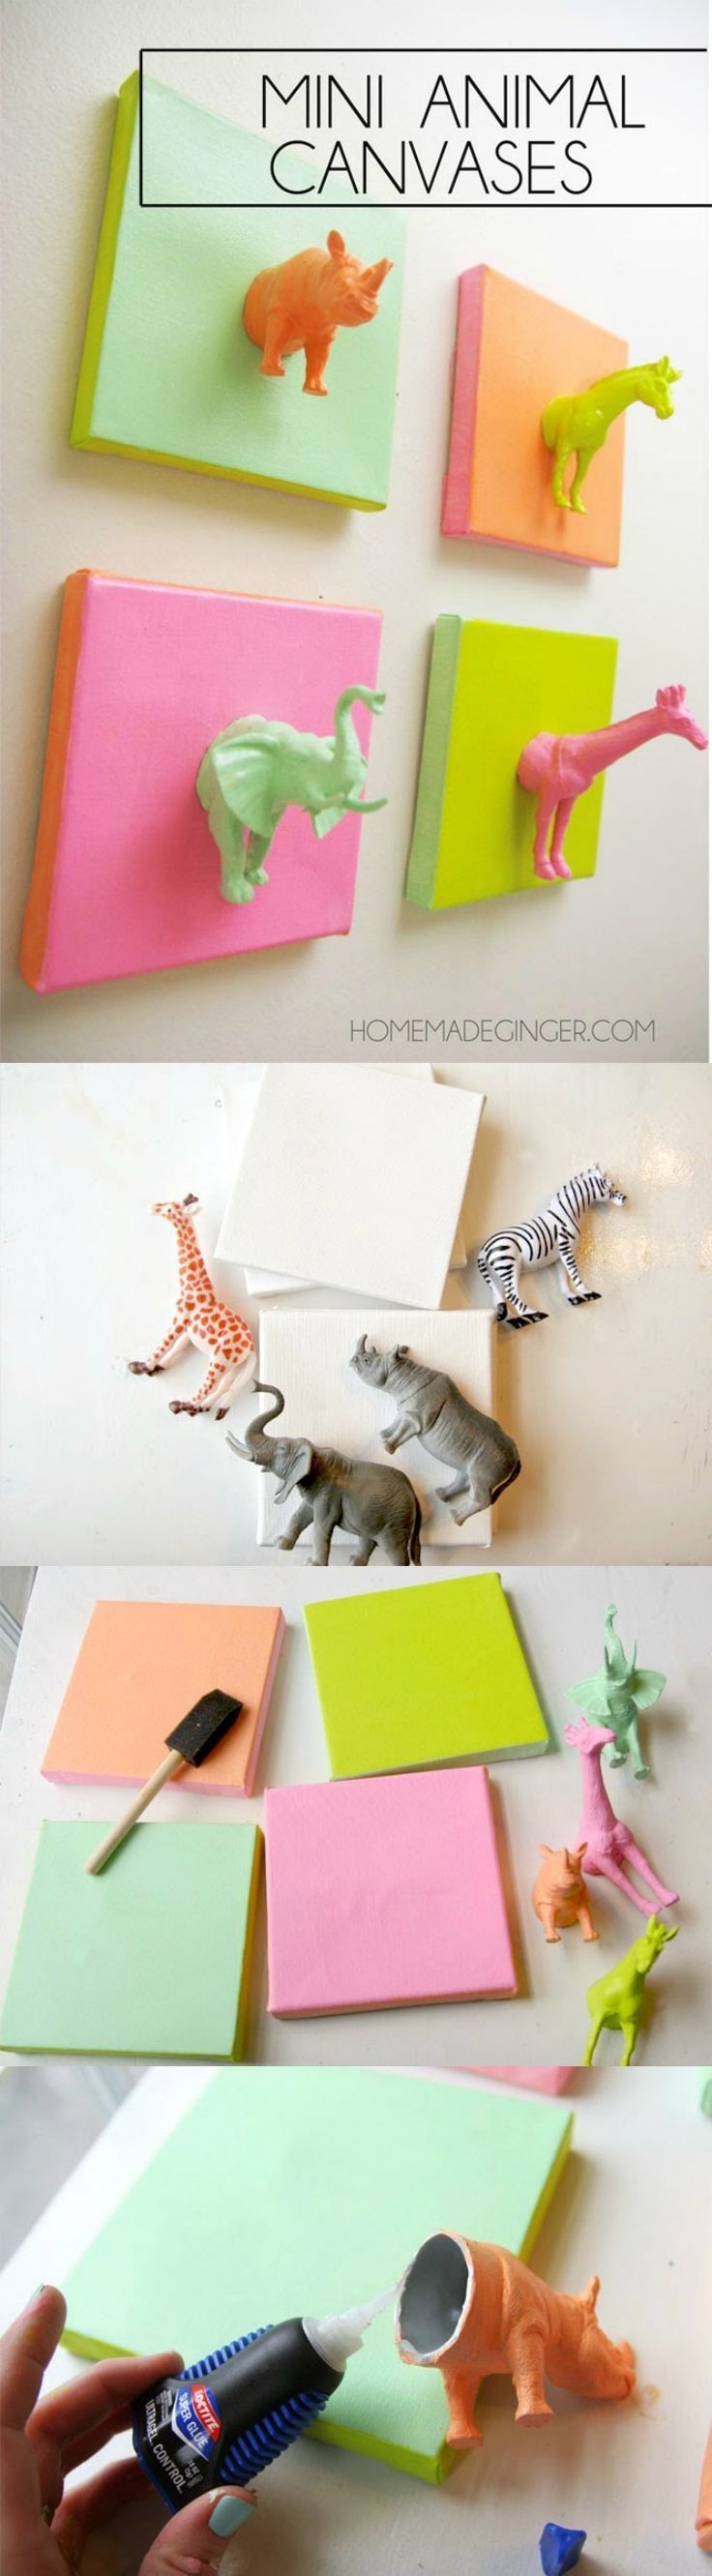 Decor Hacks This Cute Diy Canvas Art Project Made With Plastic